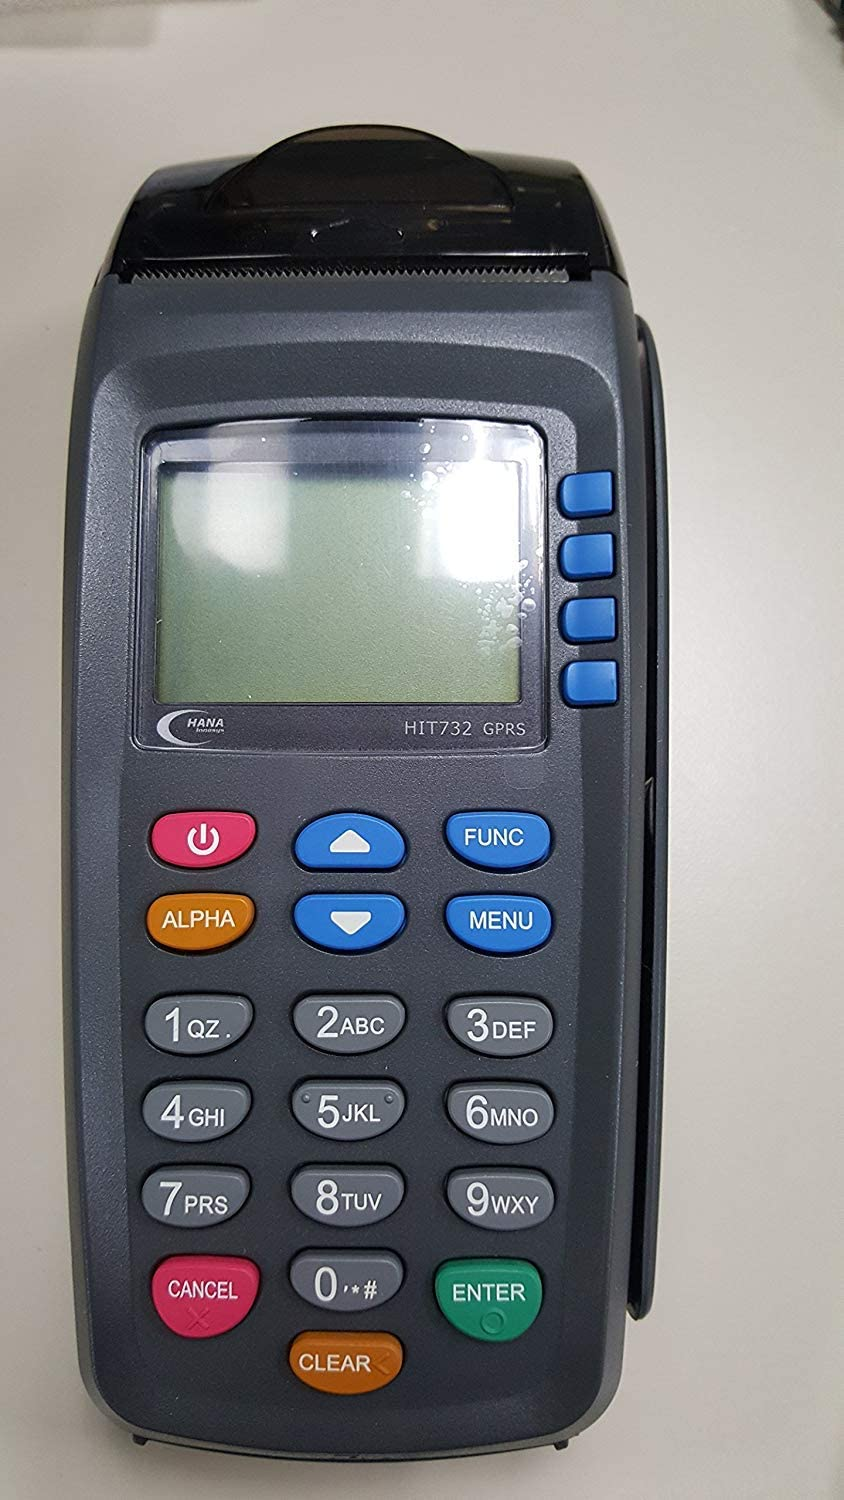 S90 - National products GPRS and EMV Hana Innosys of Version OEM 5 Unit Pax Excellent